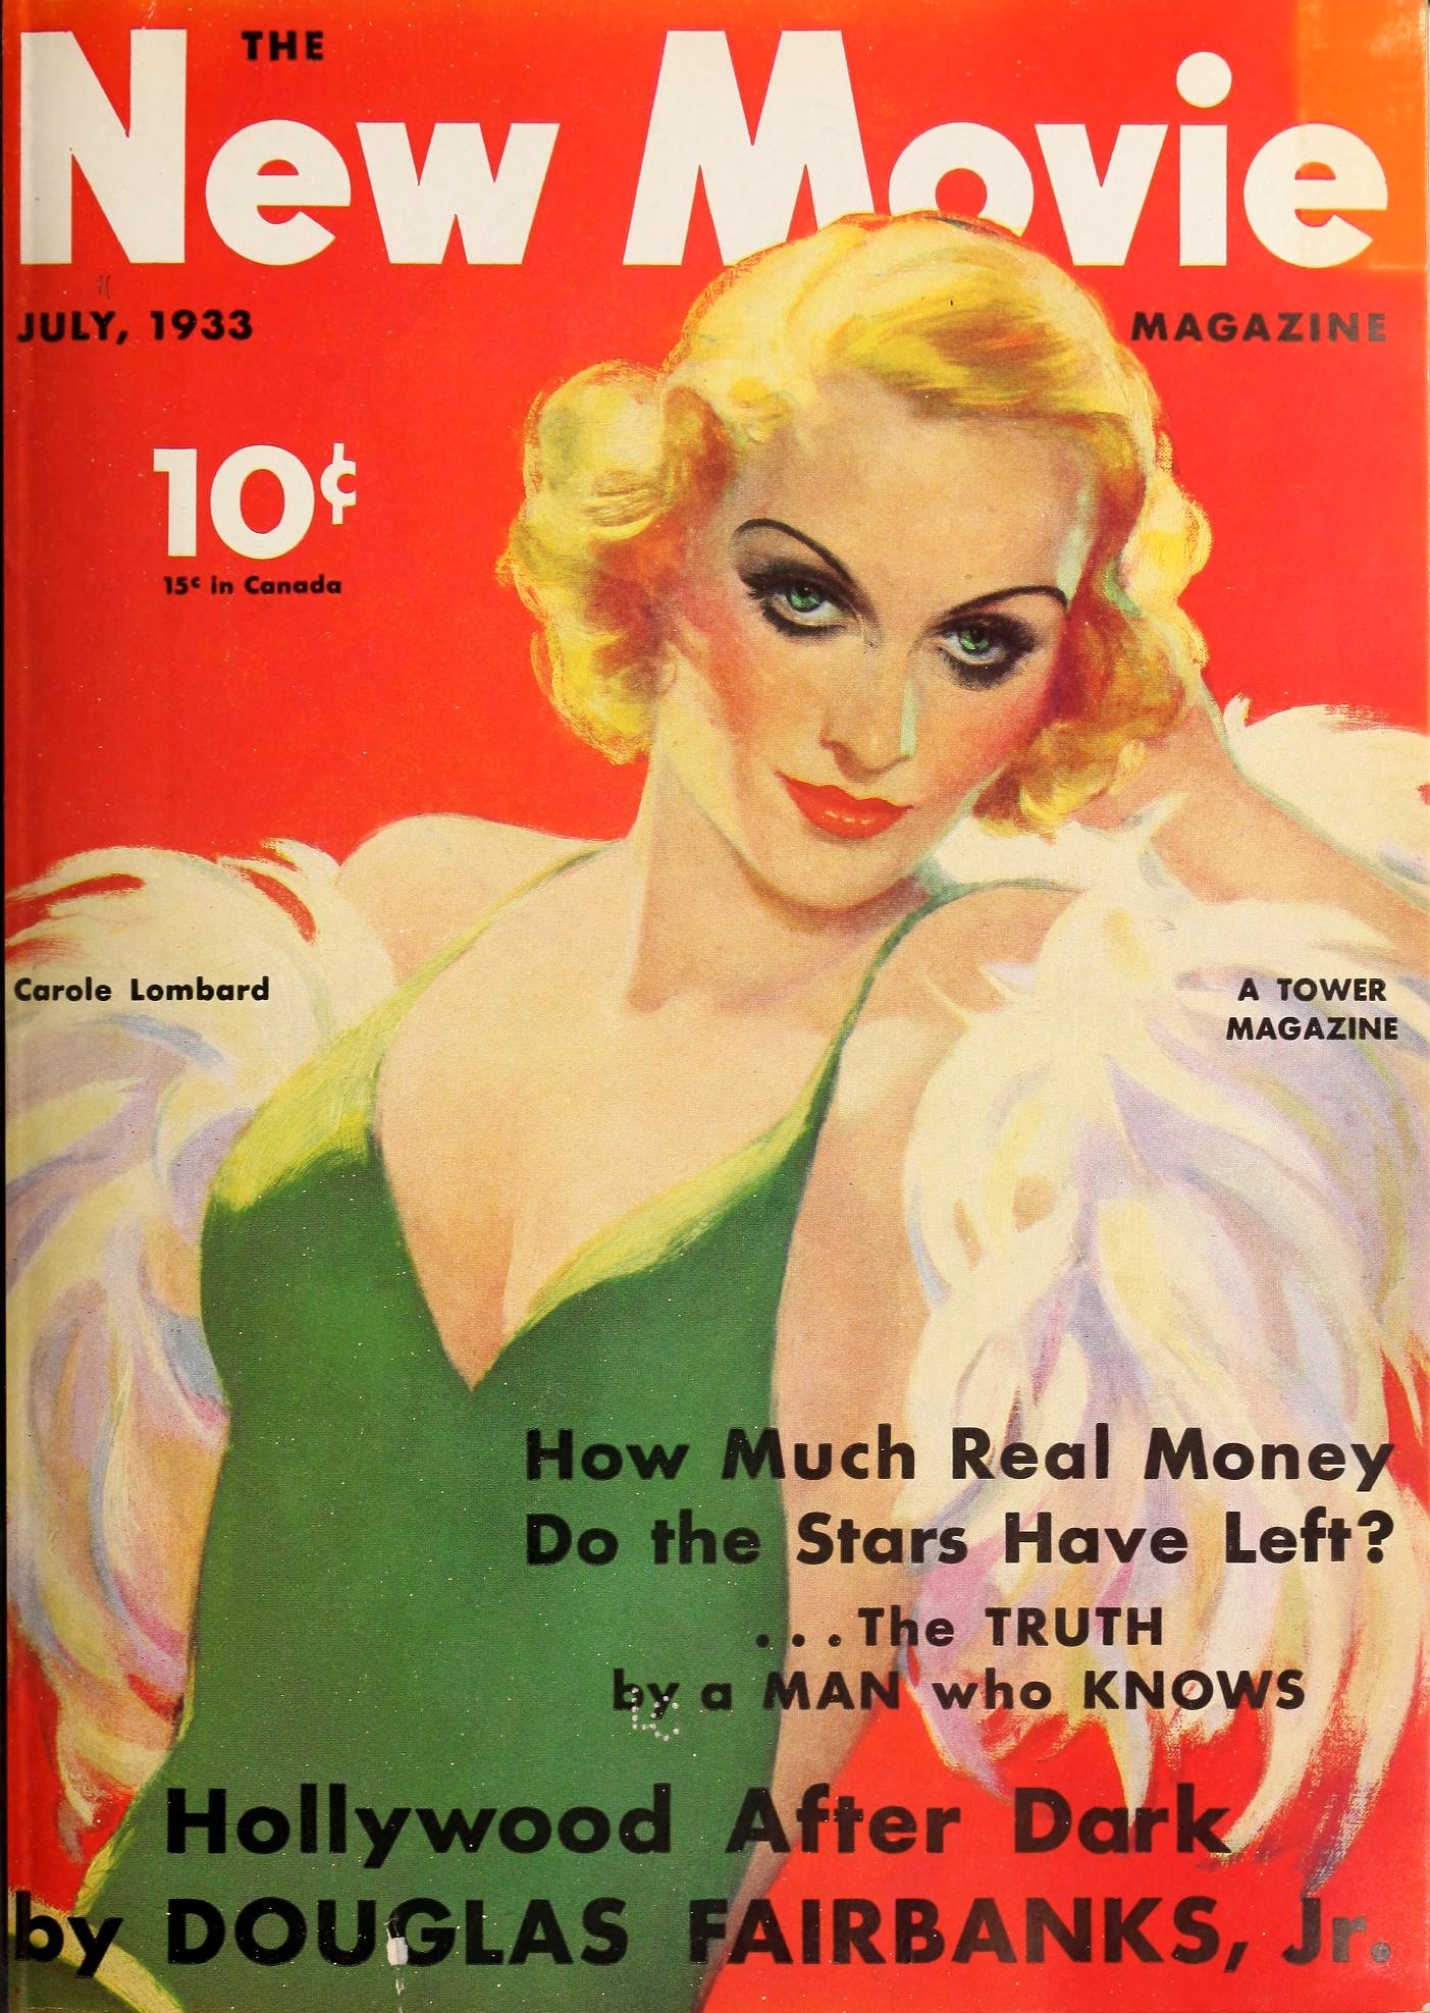 carole lombard the new movie magazine july 1933 cover large